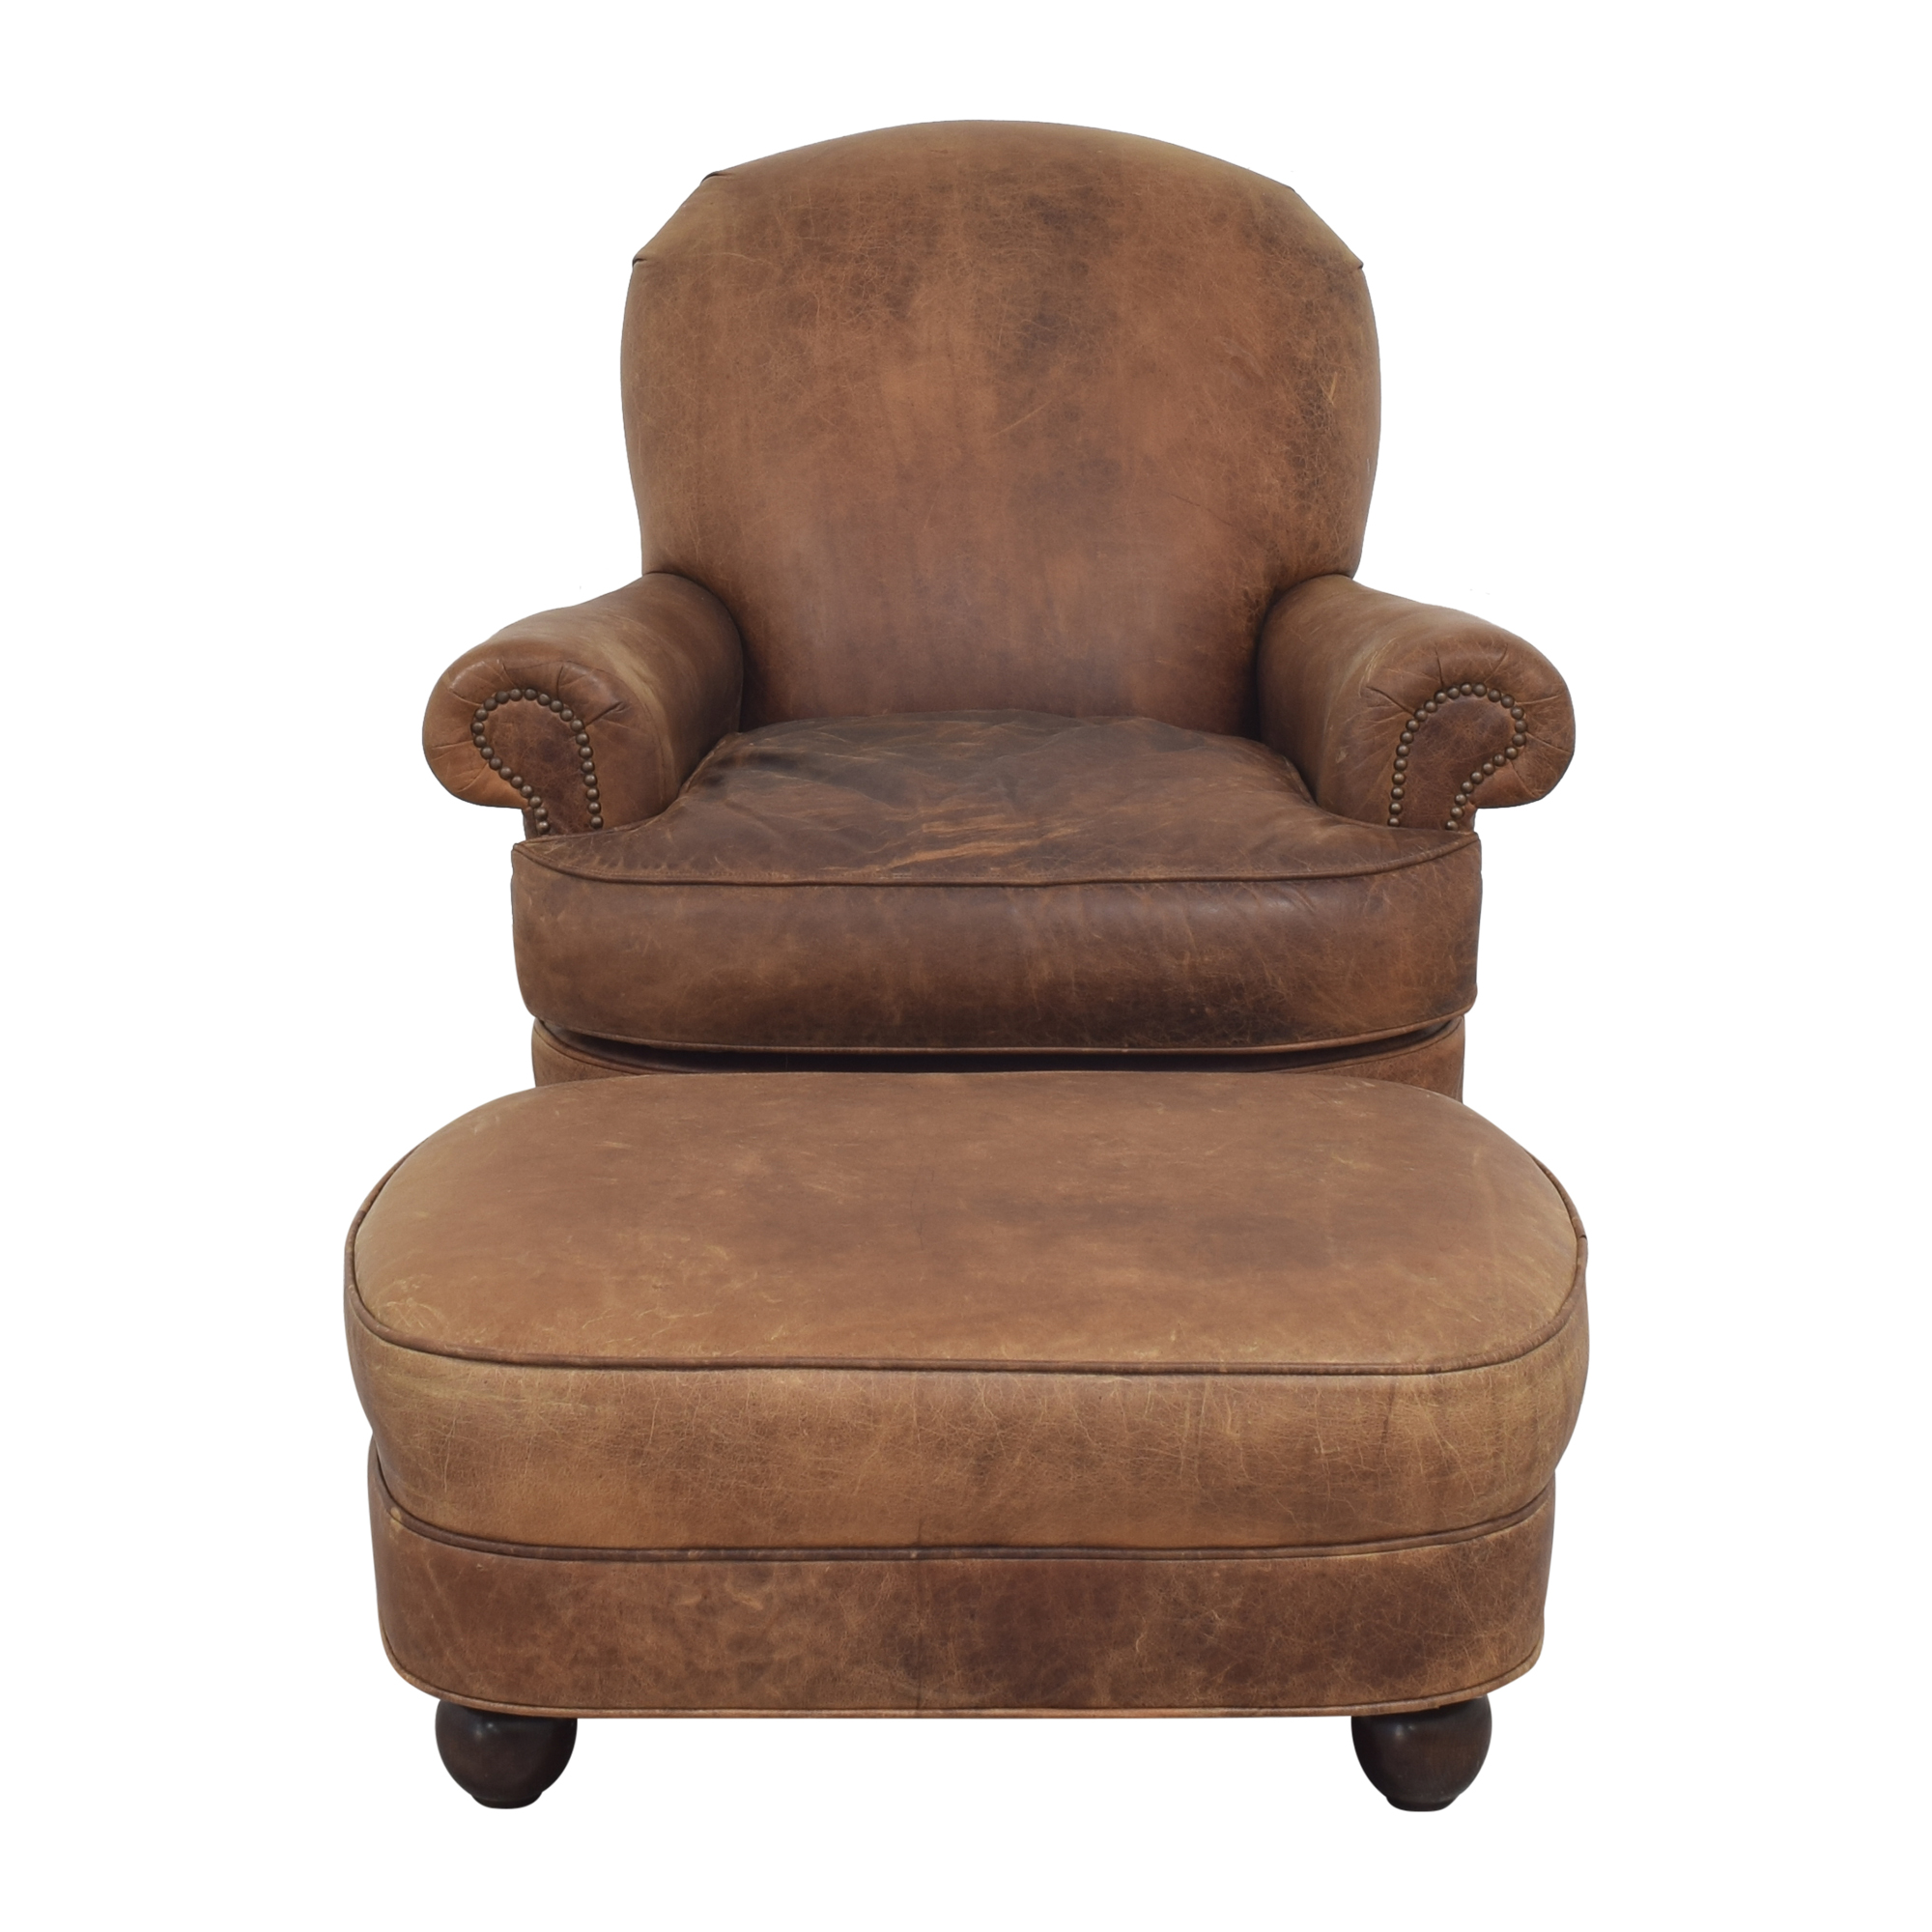 buy  Distressed Club Chair with Ottoman online